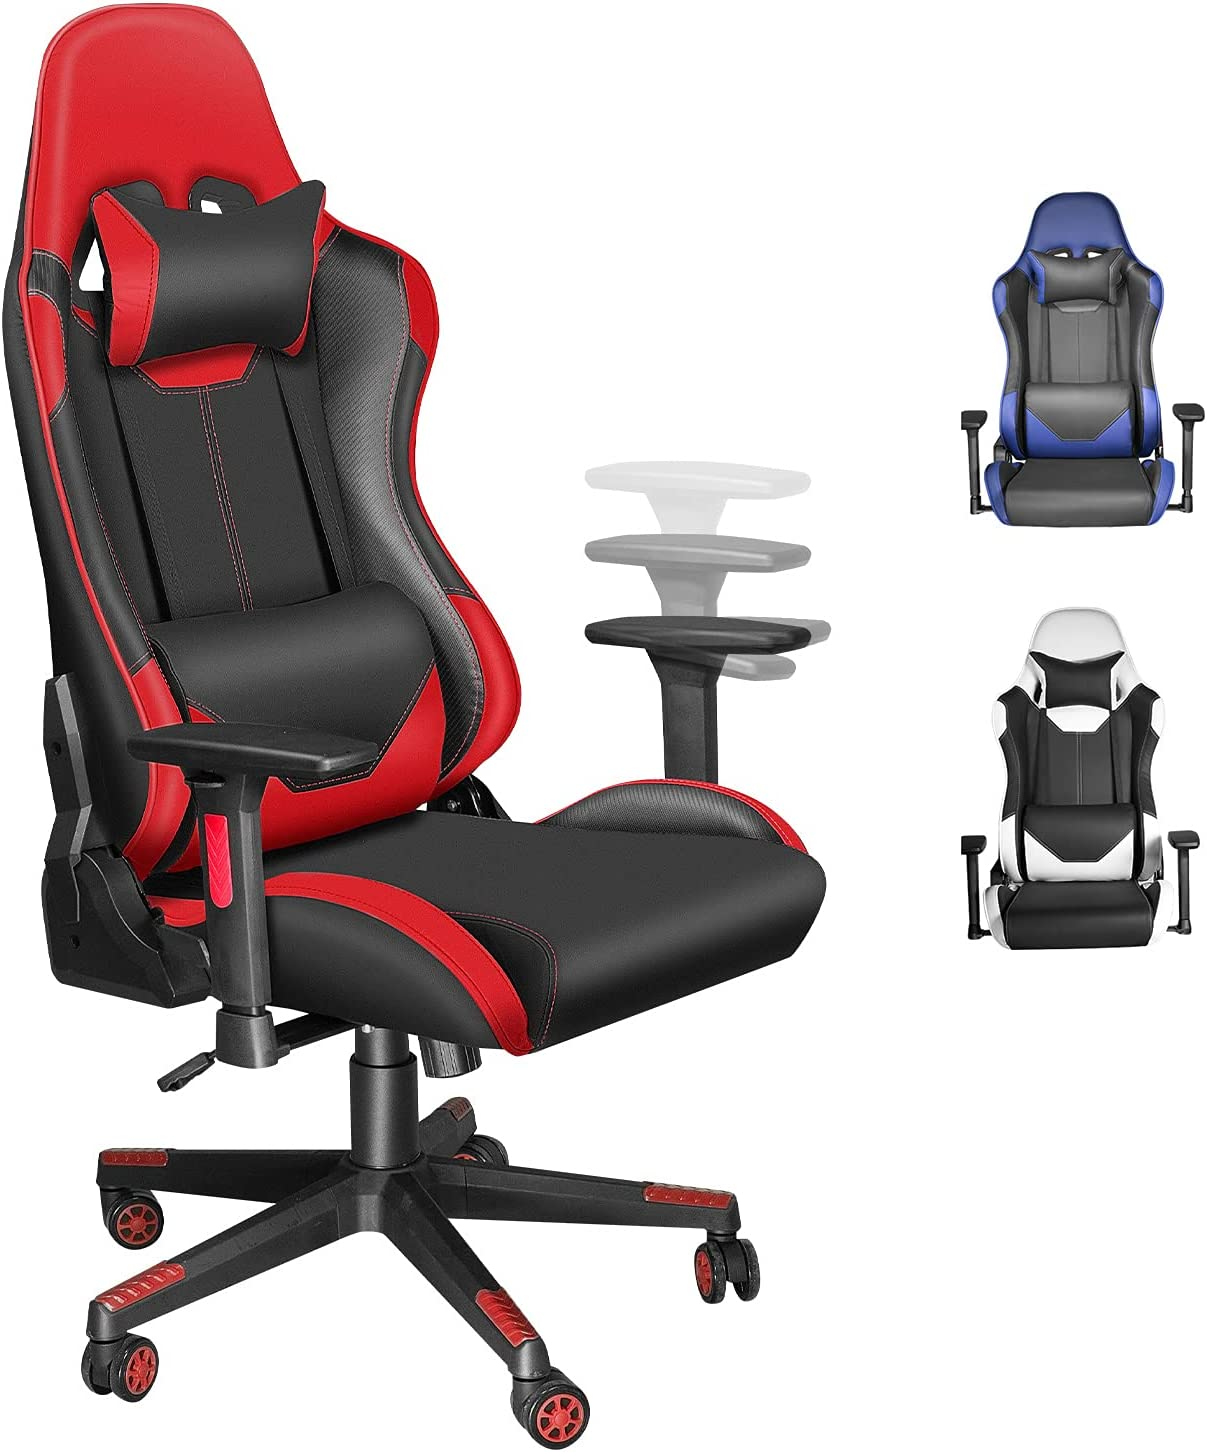 Los Angeles Mall Ergonomic Gaming Chair Computer for or 3 Adults with Teens Surprise price